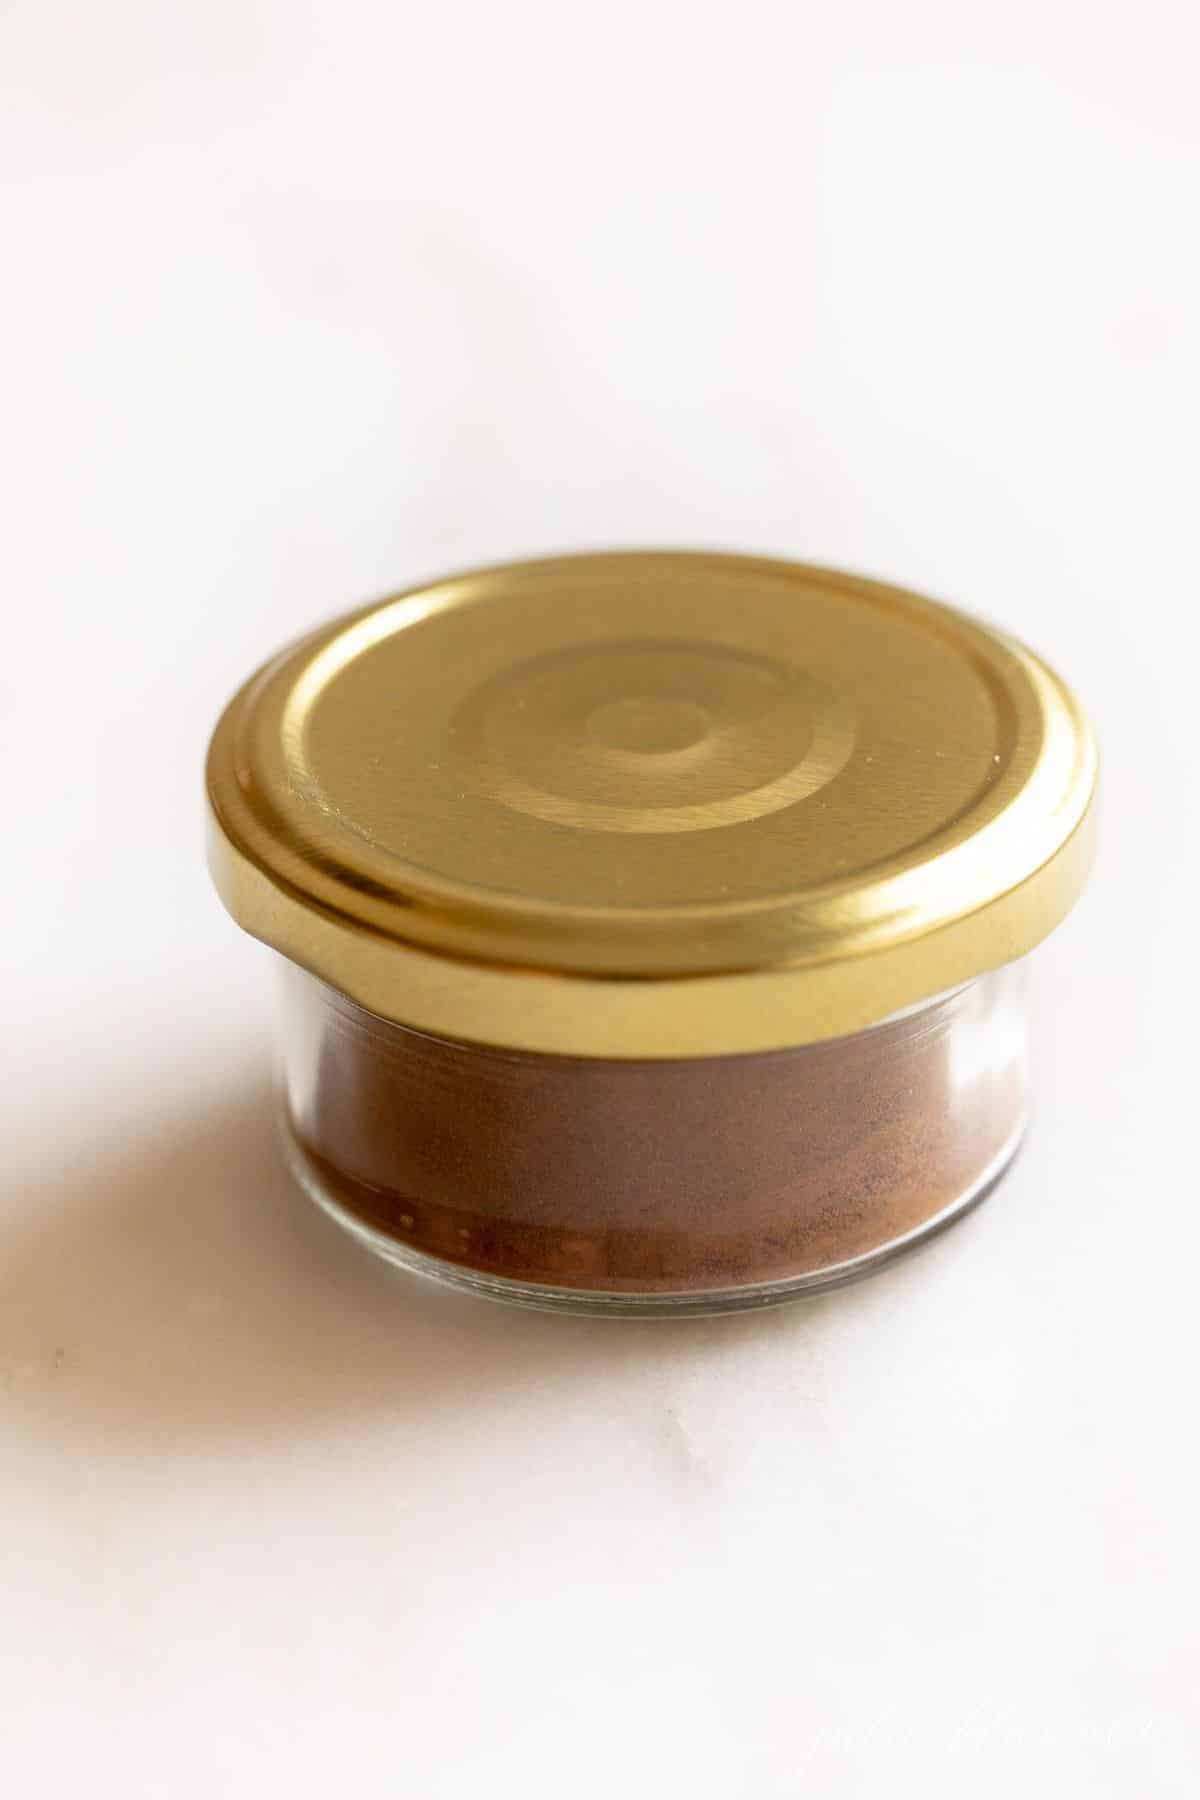 Clear jar of spices with a gold lid, on a white counter top.